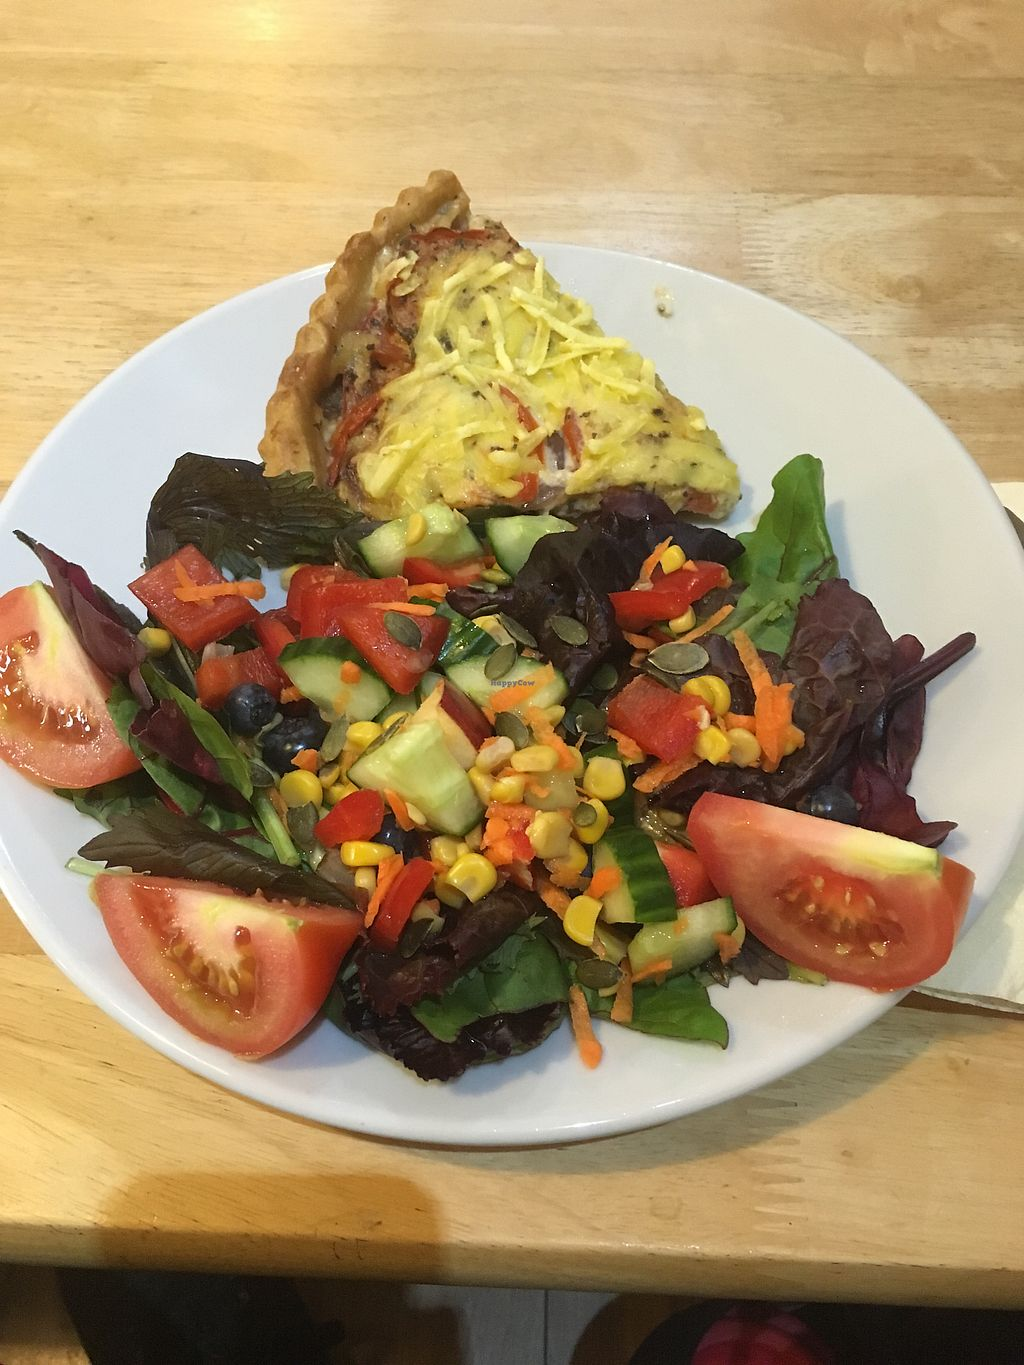 """Photo of PerryLicious Coffee and Cake Rooms  by <a href=""""/members/profile/Kwarmoth"""">Kwarmoth</a> <br/>vegan quiche and salad  <br/> August 6, 2017  - <a href='/contact/abuse/image/73298/289605'>Report</a>"""